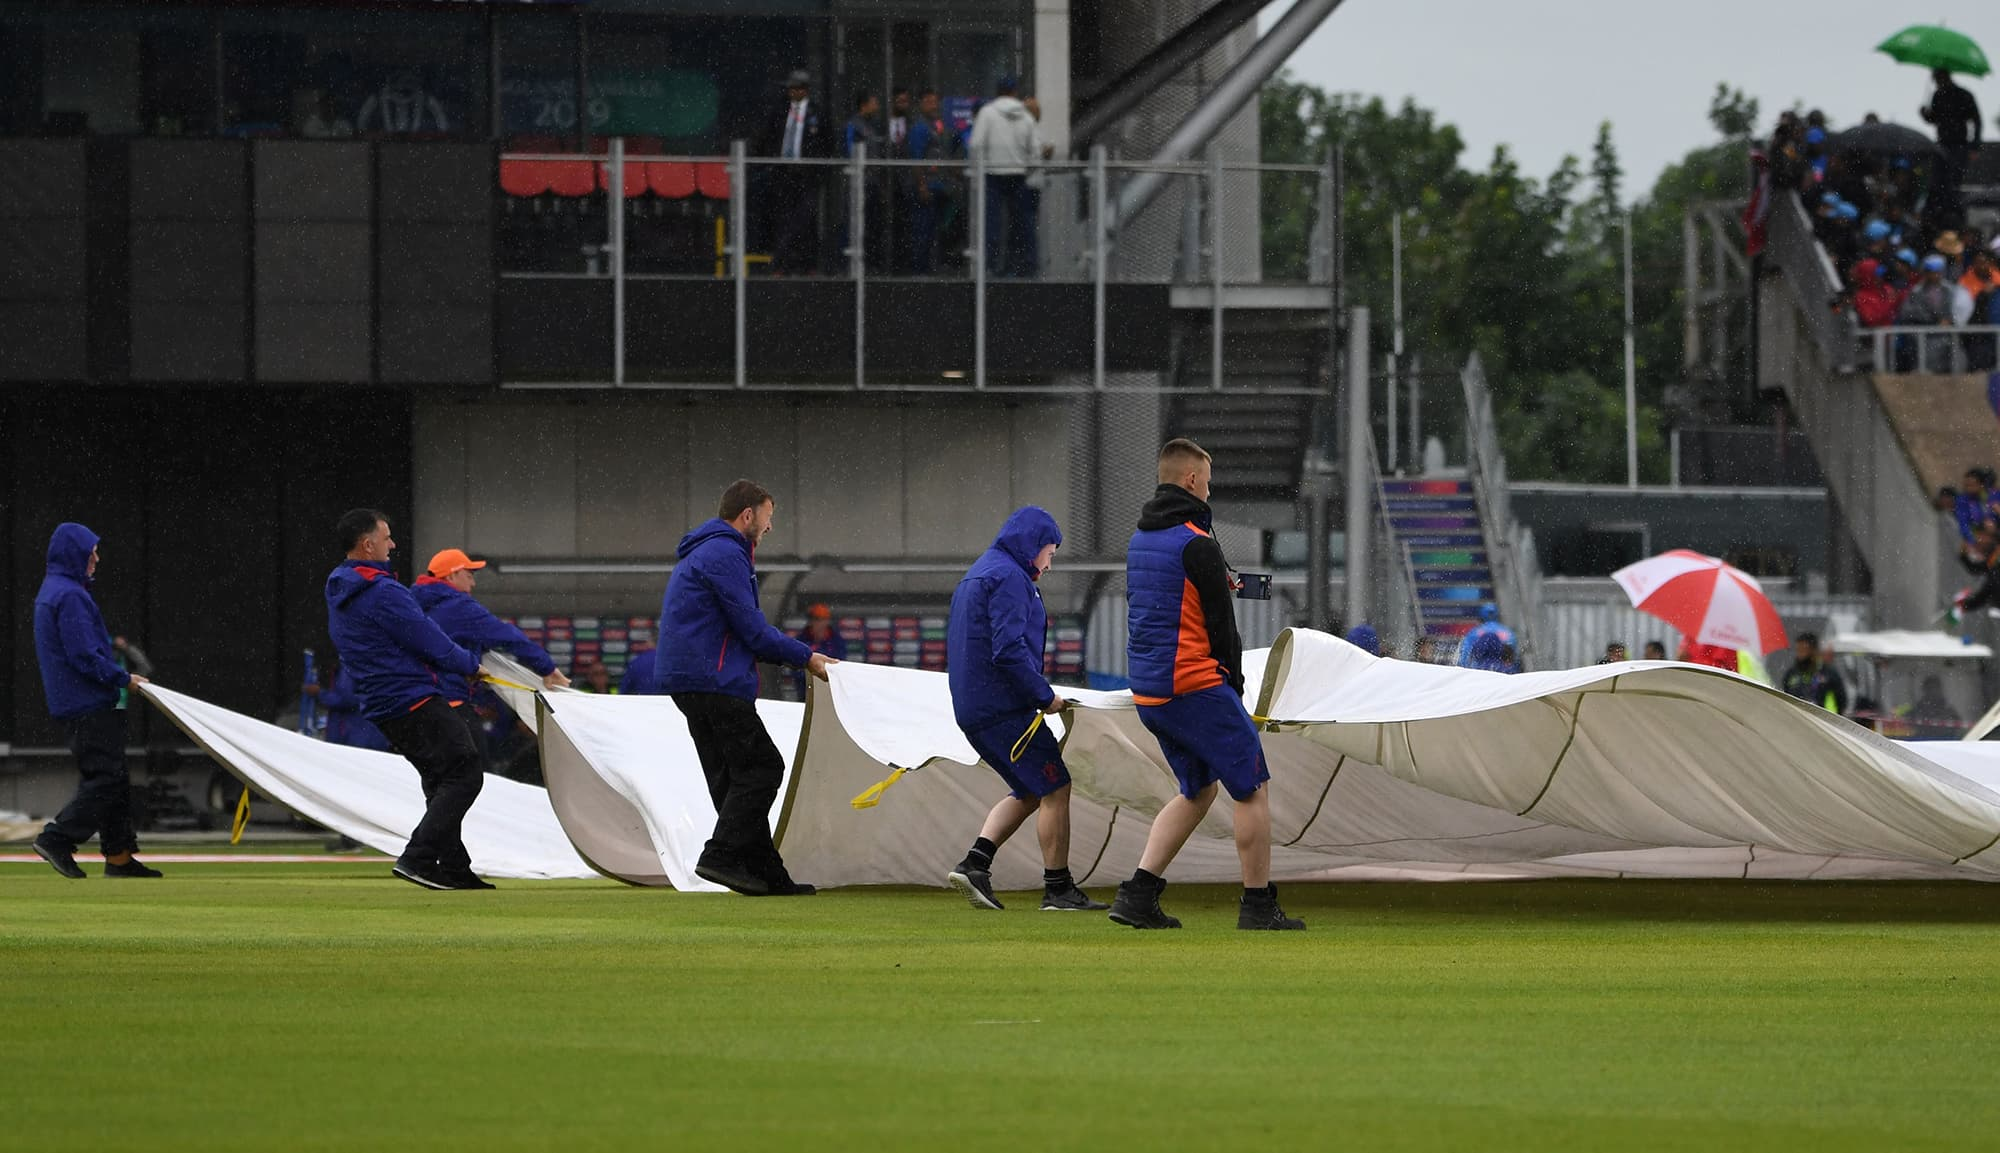 Ground staff cover the playing area as rain stops play during the 2019 Cricket World Cup group stage match between India and Pakistan at Old Trafford in Manchester. ─ AFP